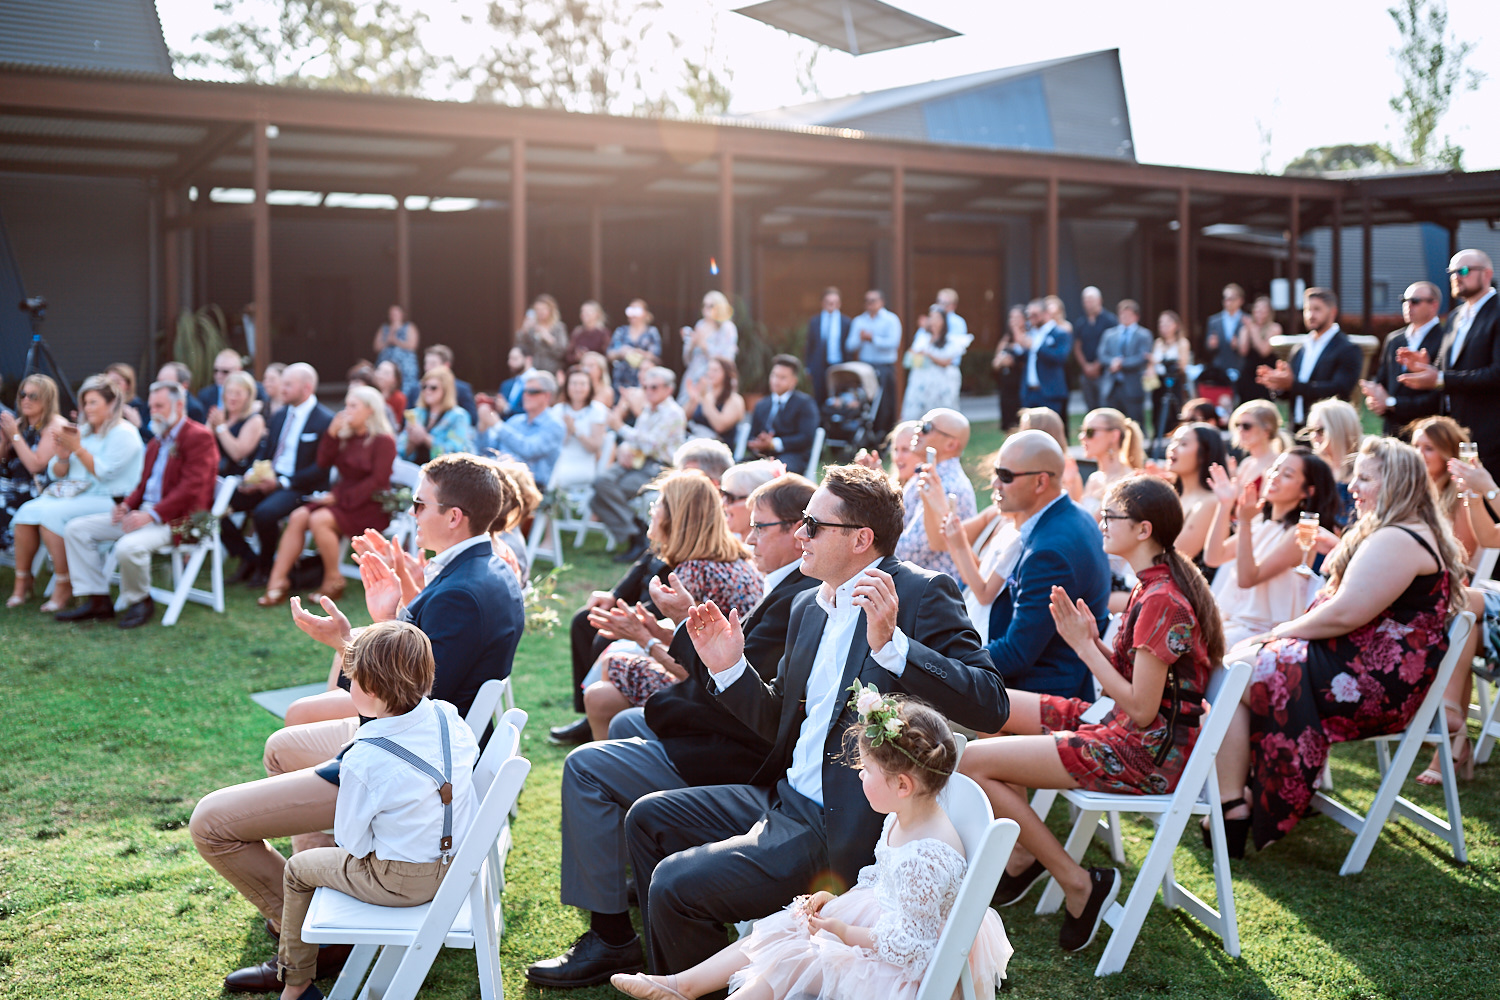 Wedding guests clapping during ceremony at at Estate Tuscany Pokolbin in the Hunter Valley by wedding photographer Joshua Witheford